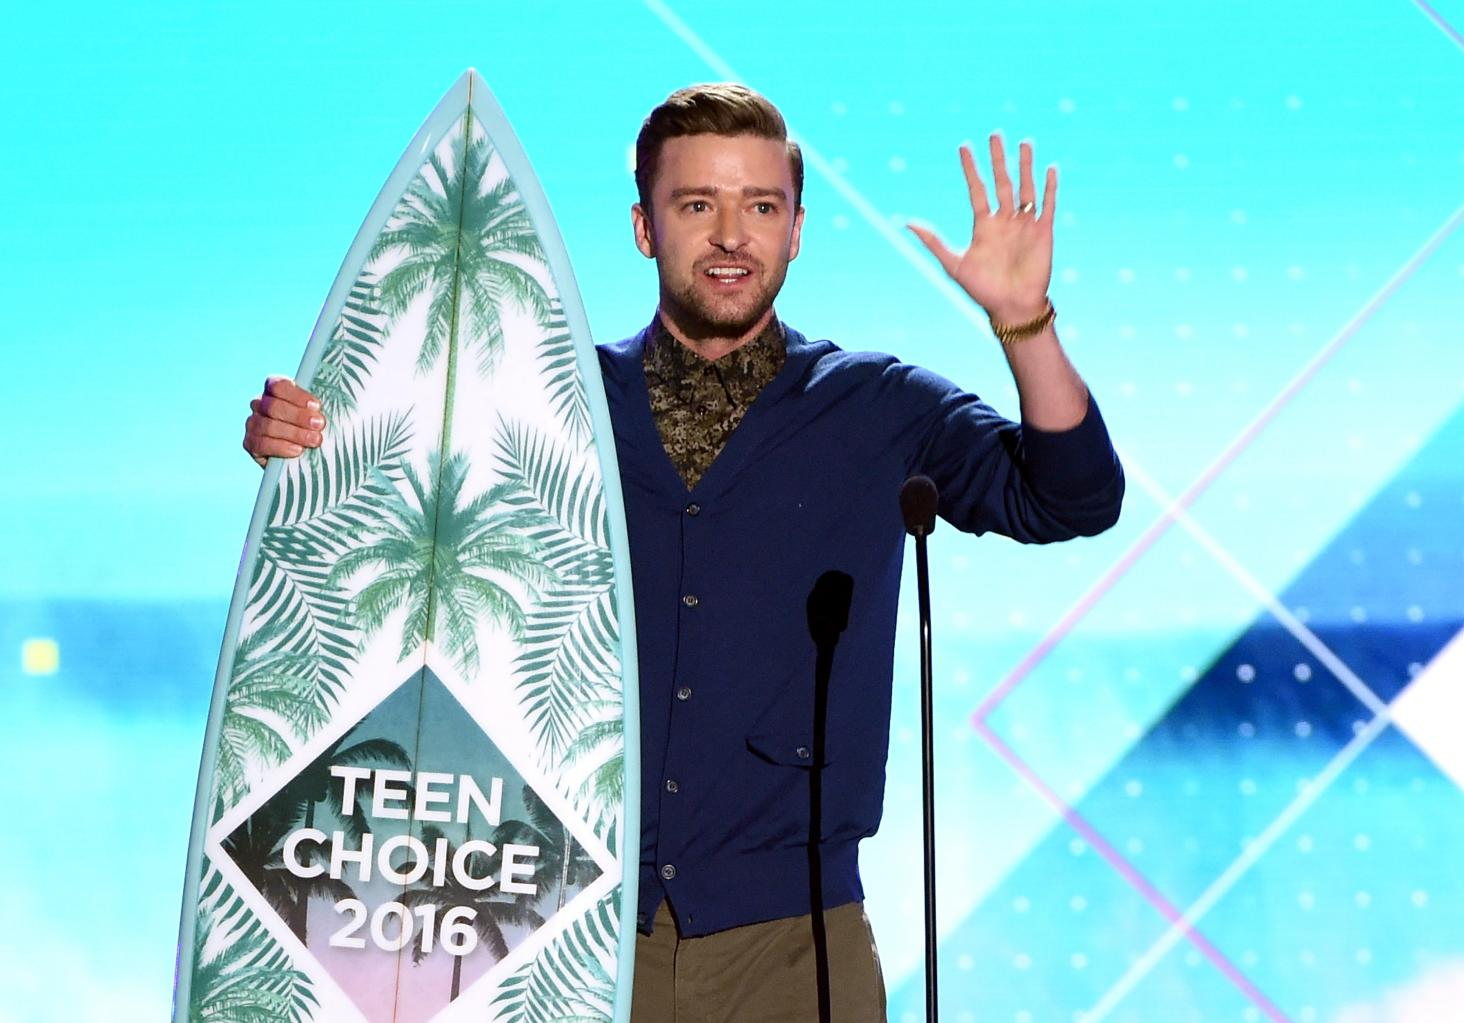 Justin Timberlake Delivers Powerful Message Of Hope During Teen Choice Awards Acceptance Speech